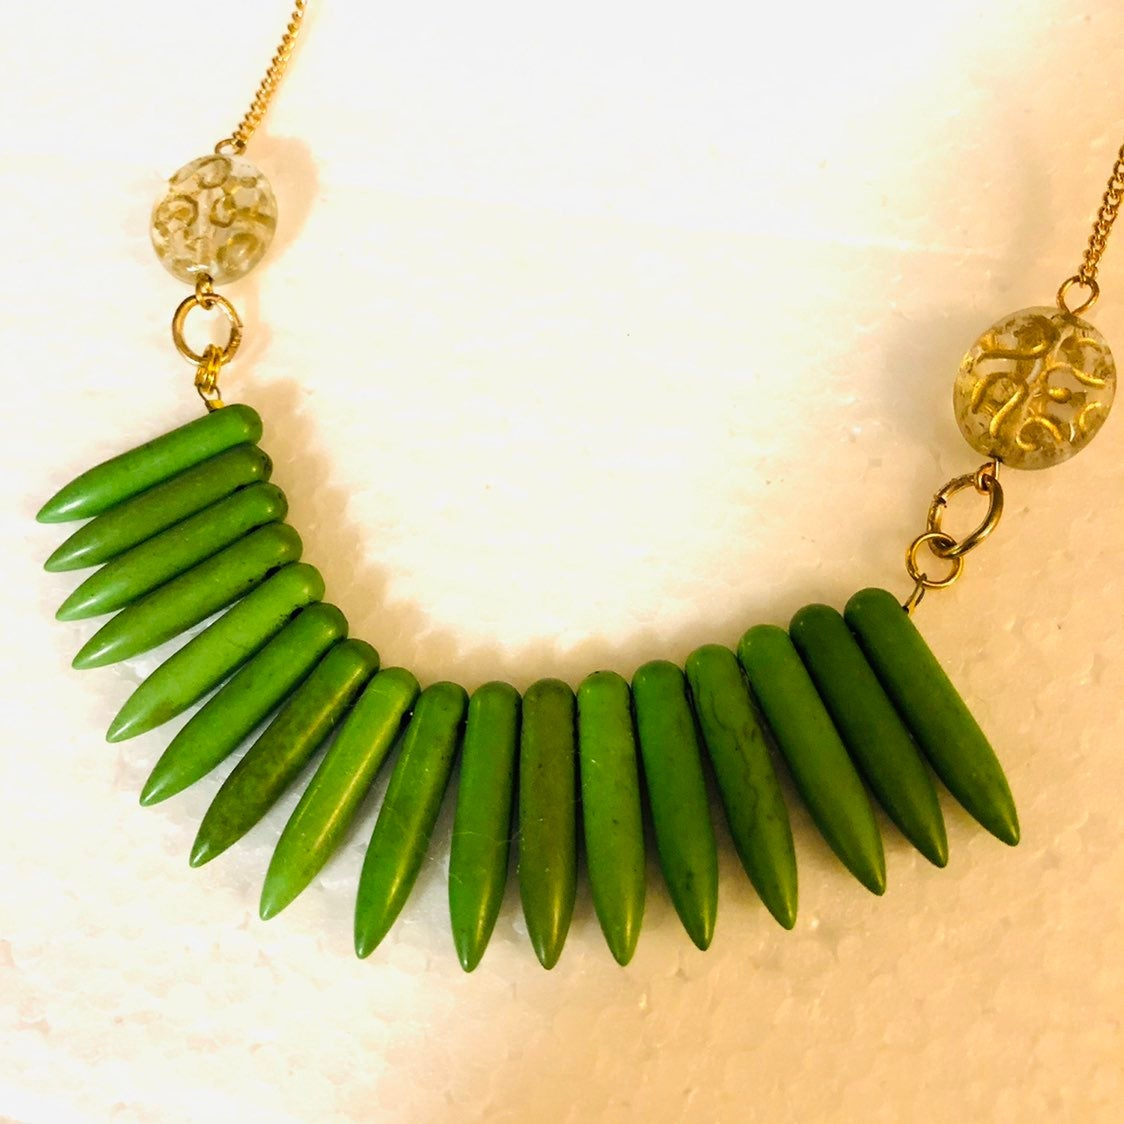 Green Necklace designer boutique jewelry